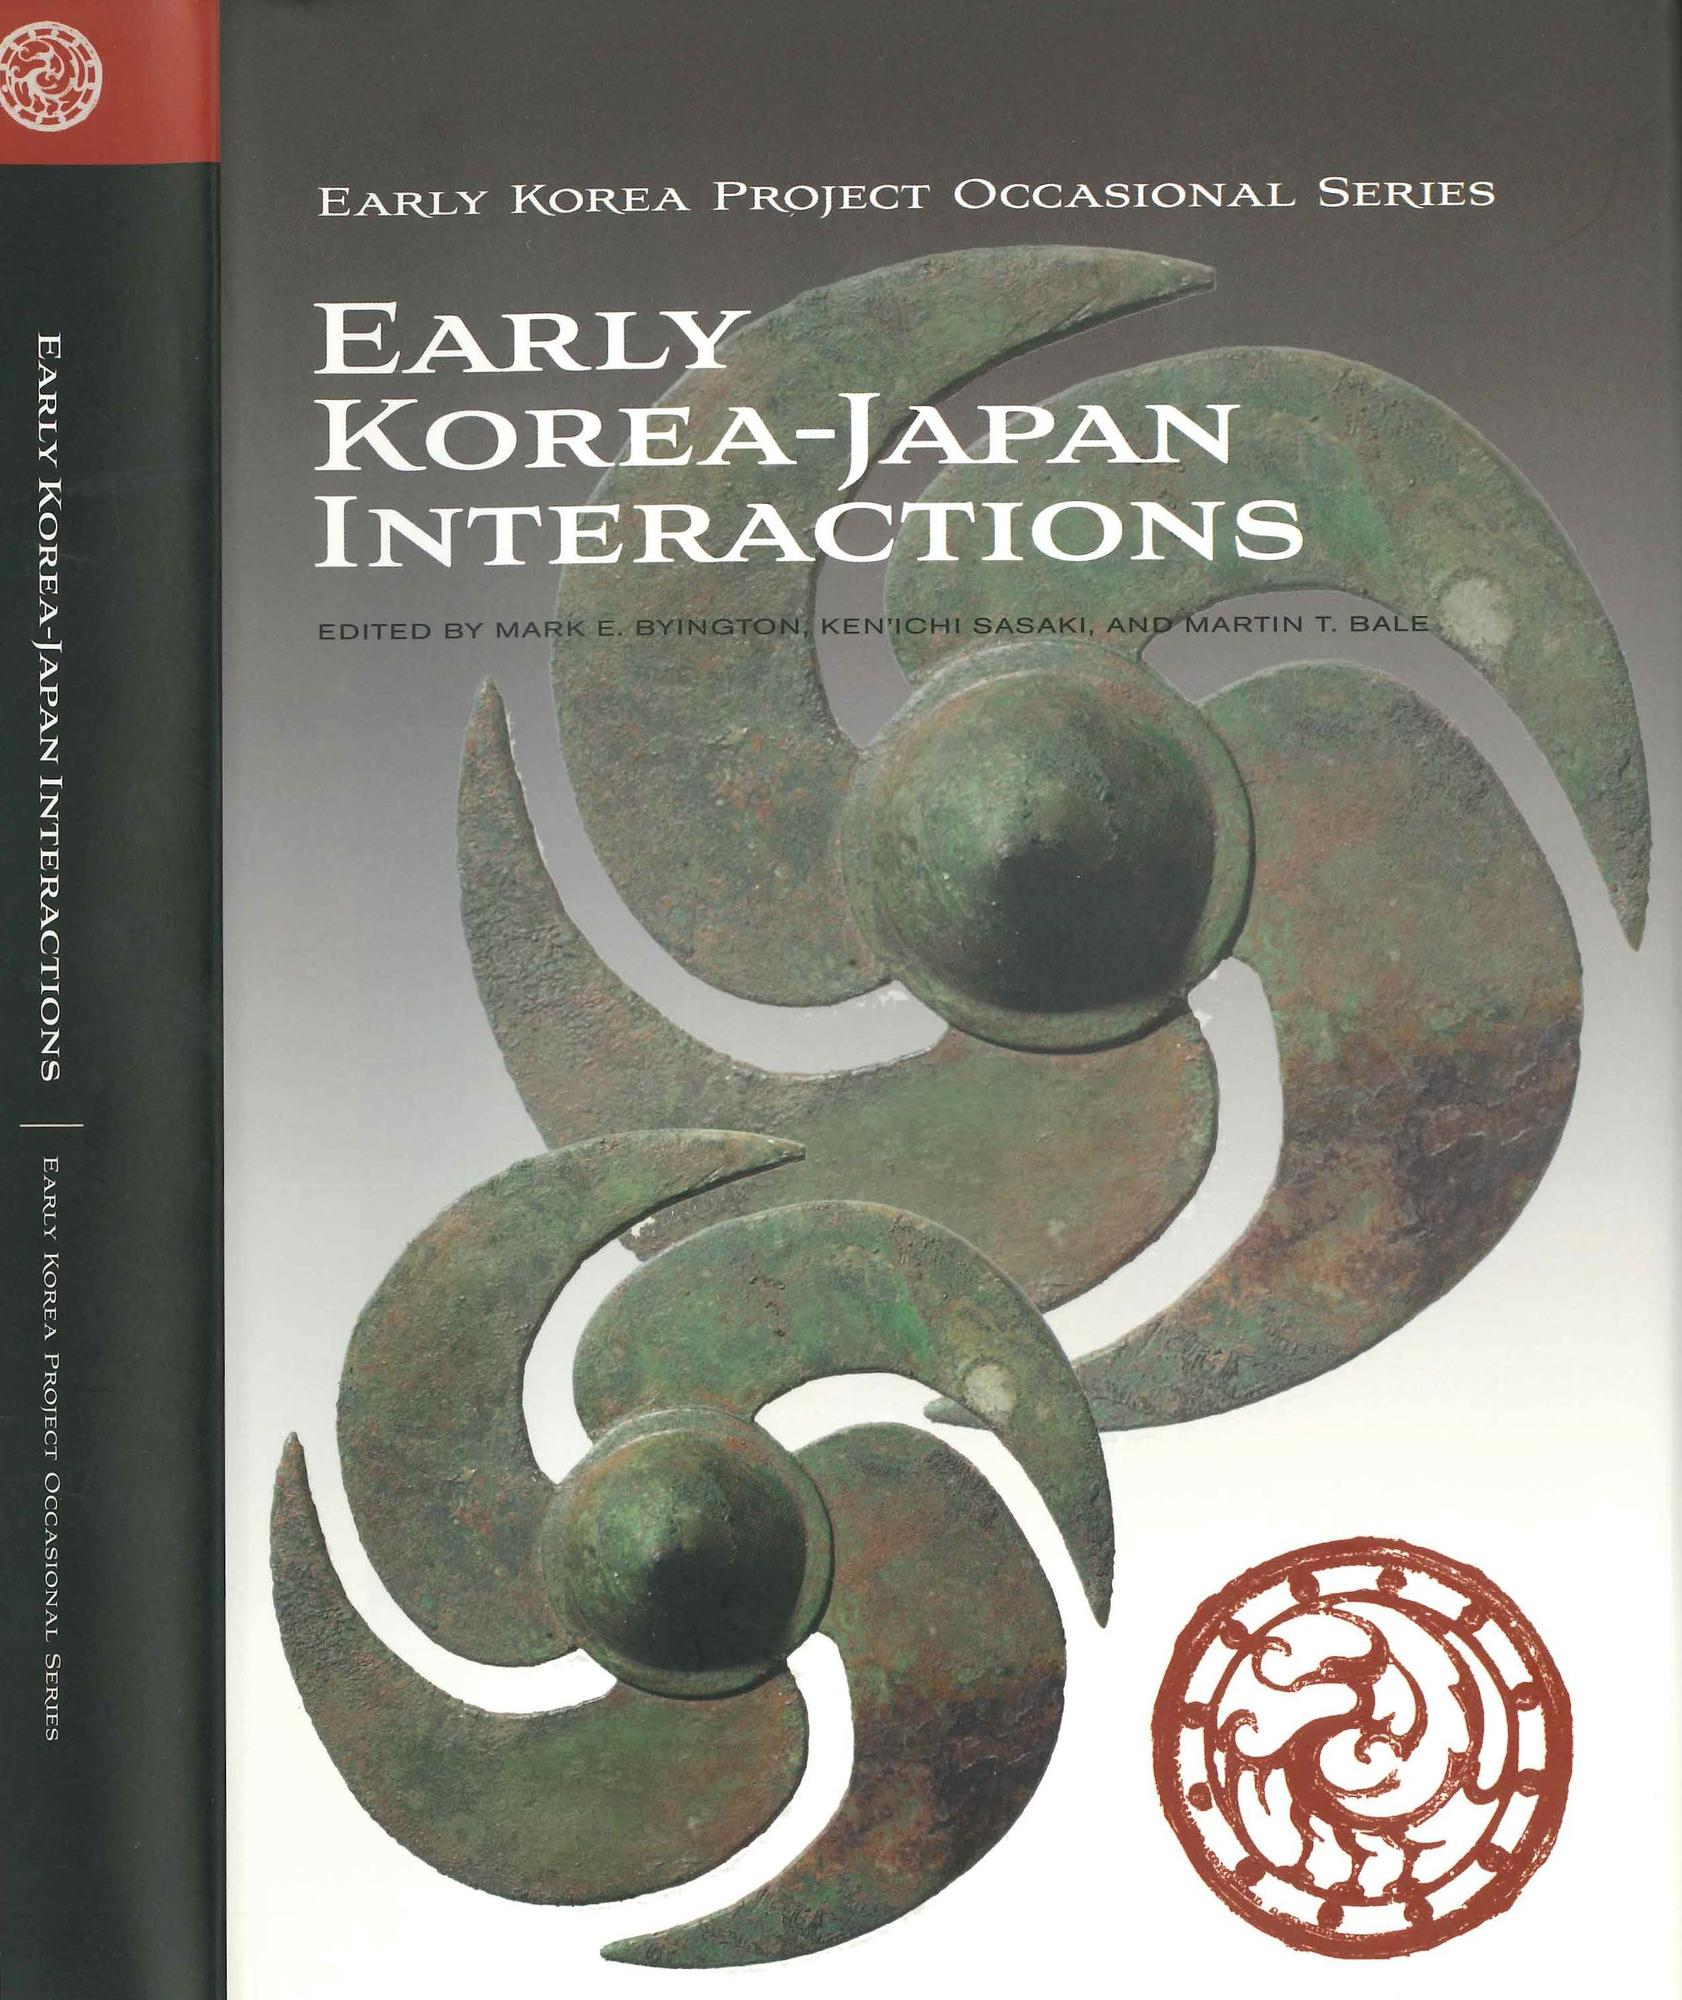 Early Korea-Japan Interactions